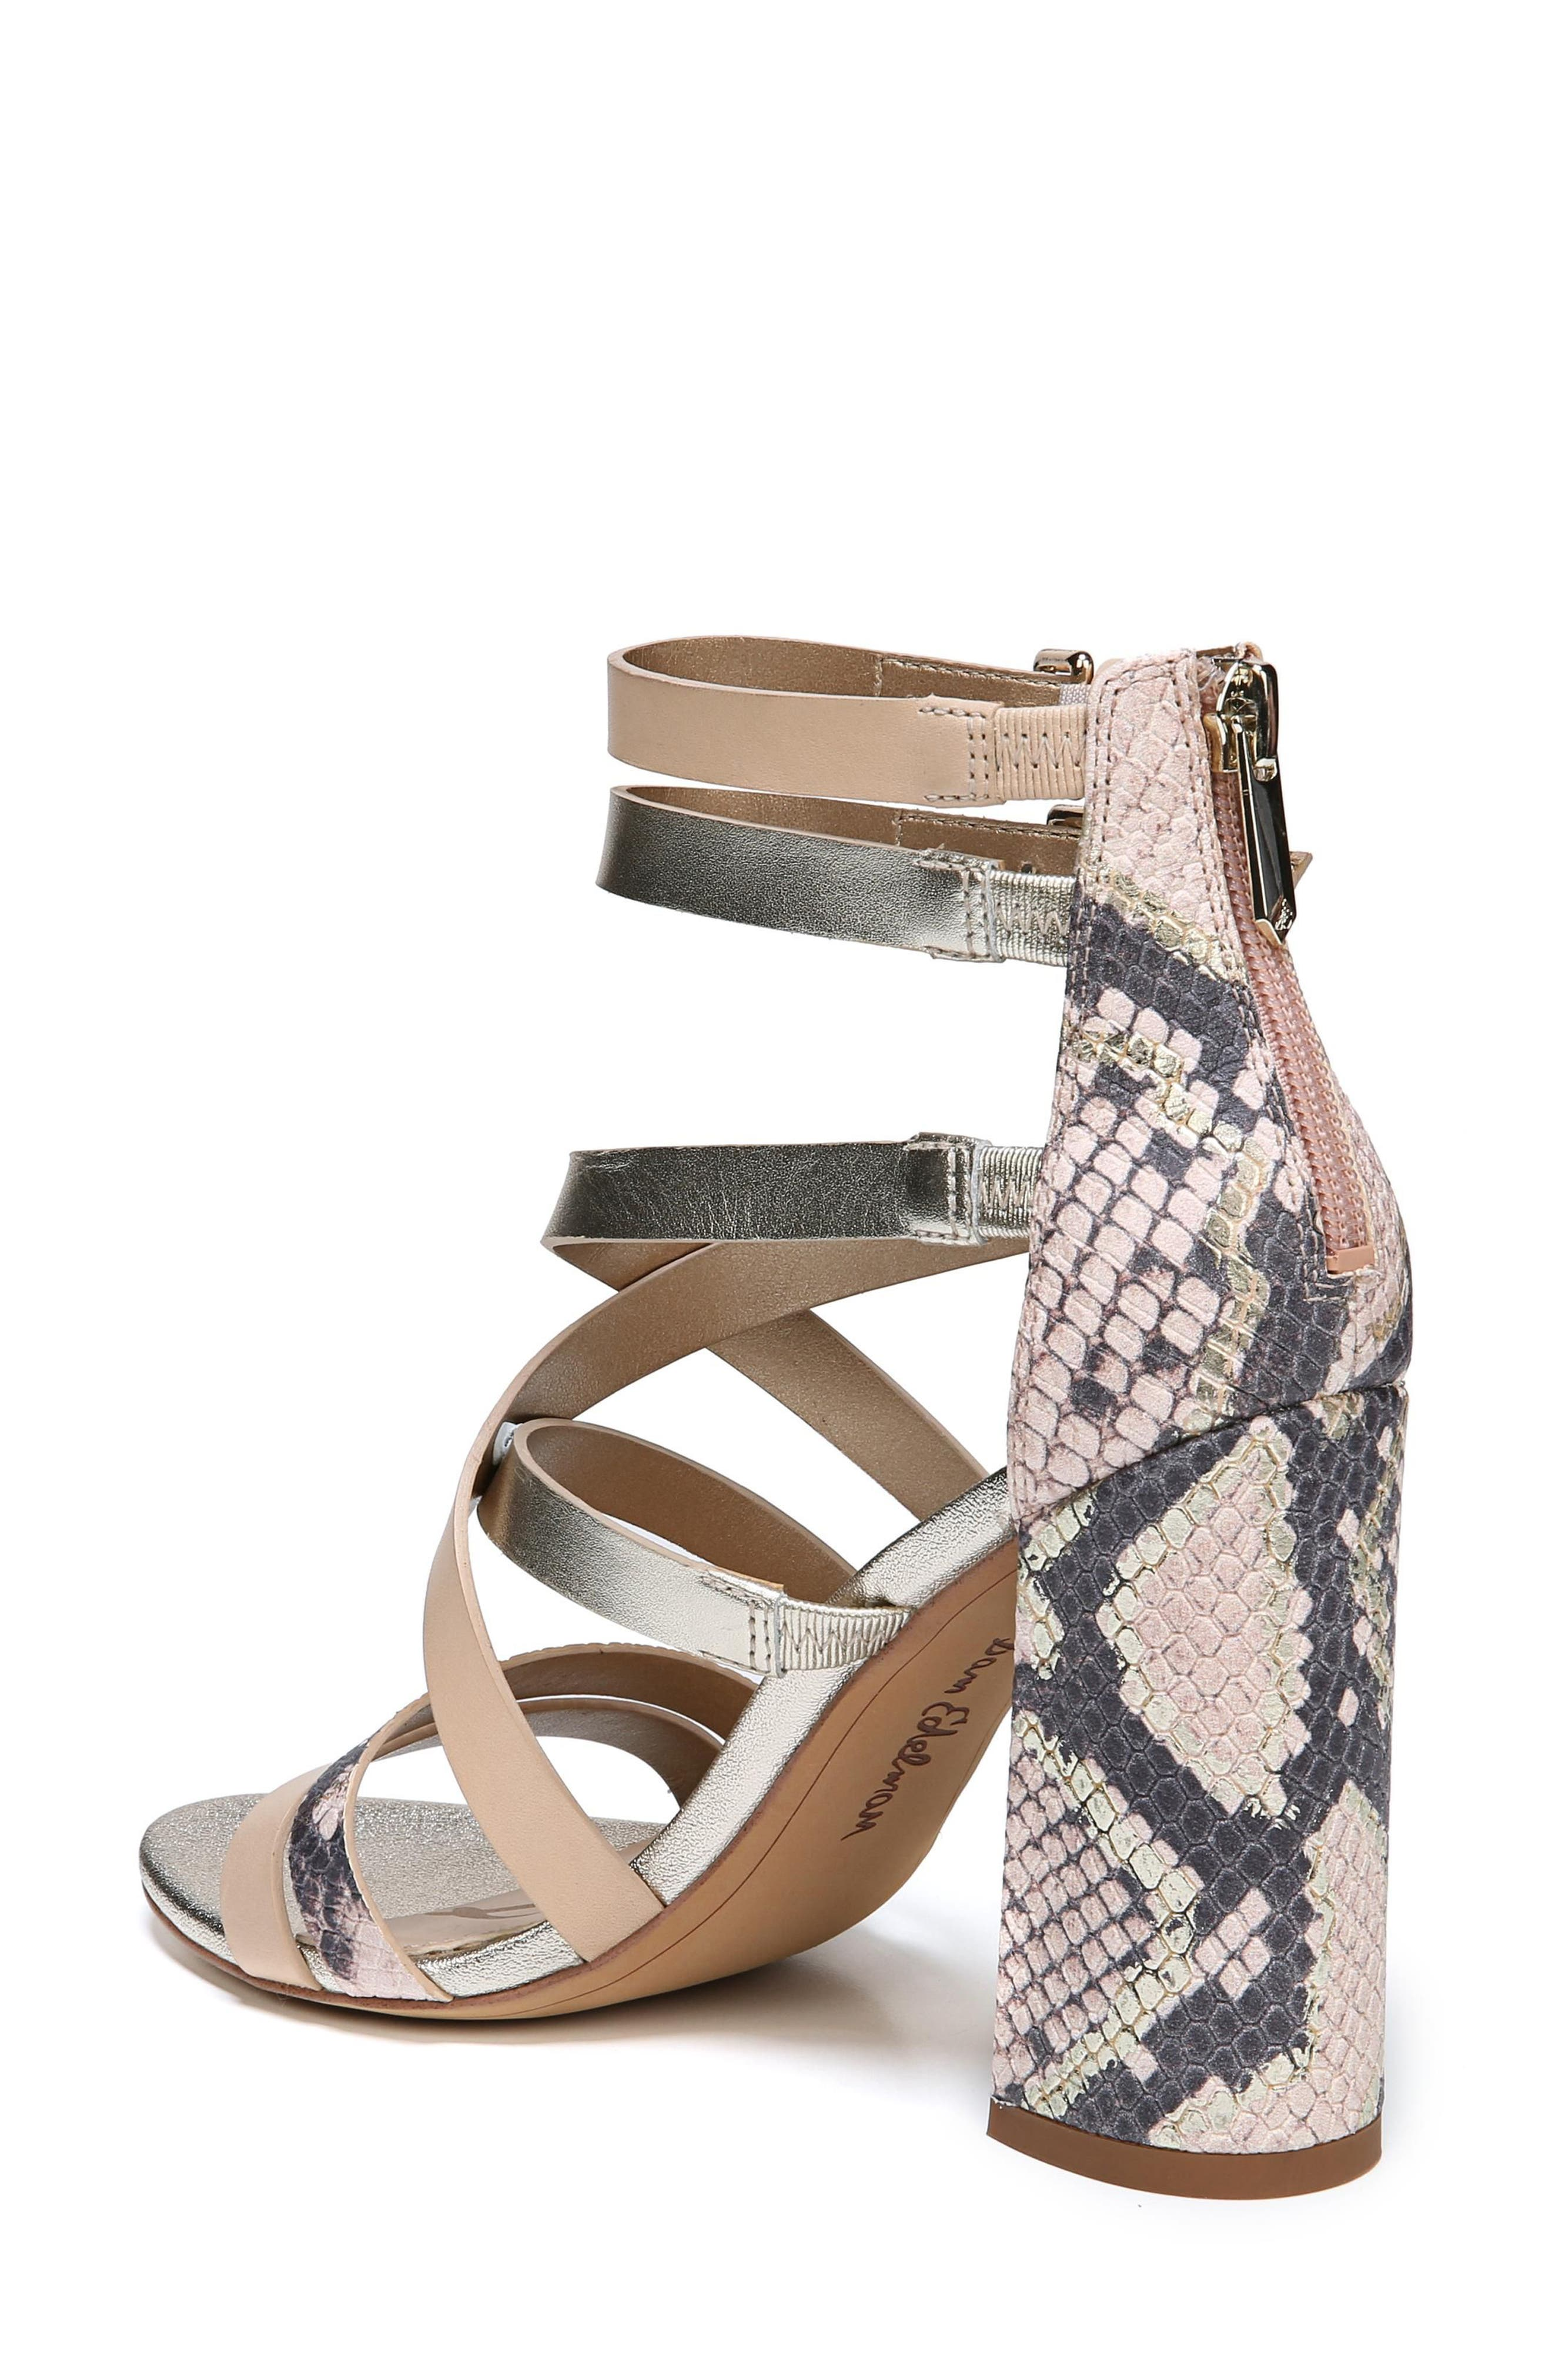 Yema Block Heel Sandal,                             Alternate thumbnail 2, color,                             NATURAL/ PINK/ JUTE